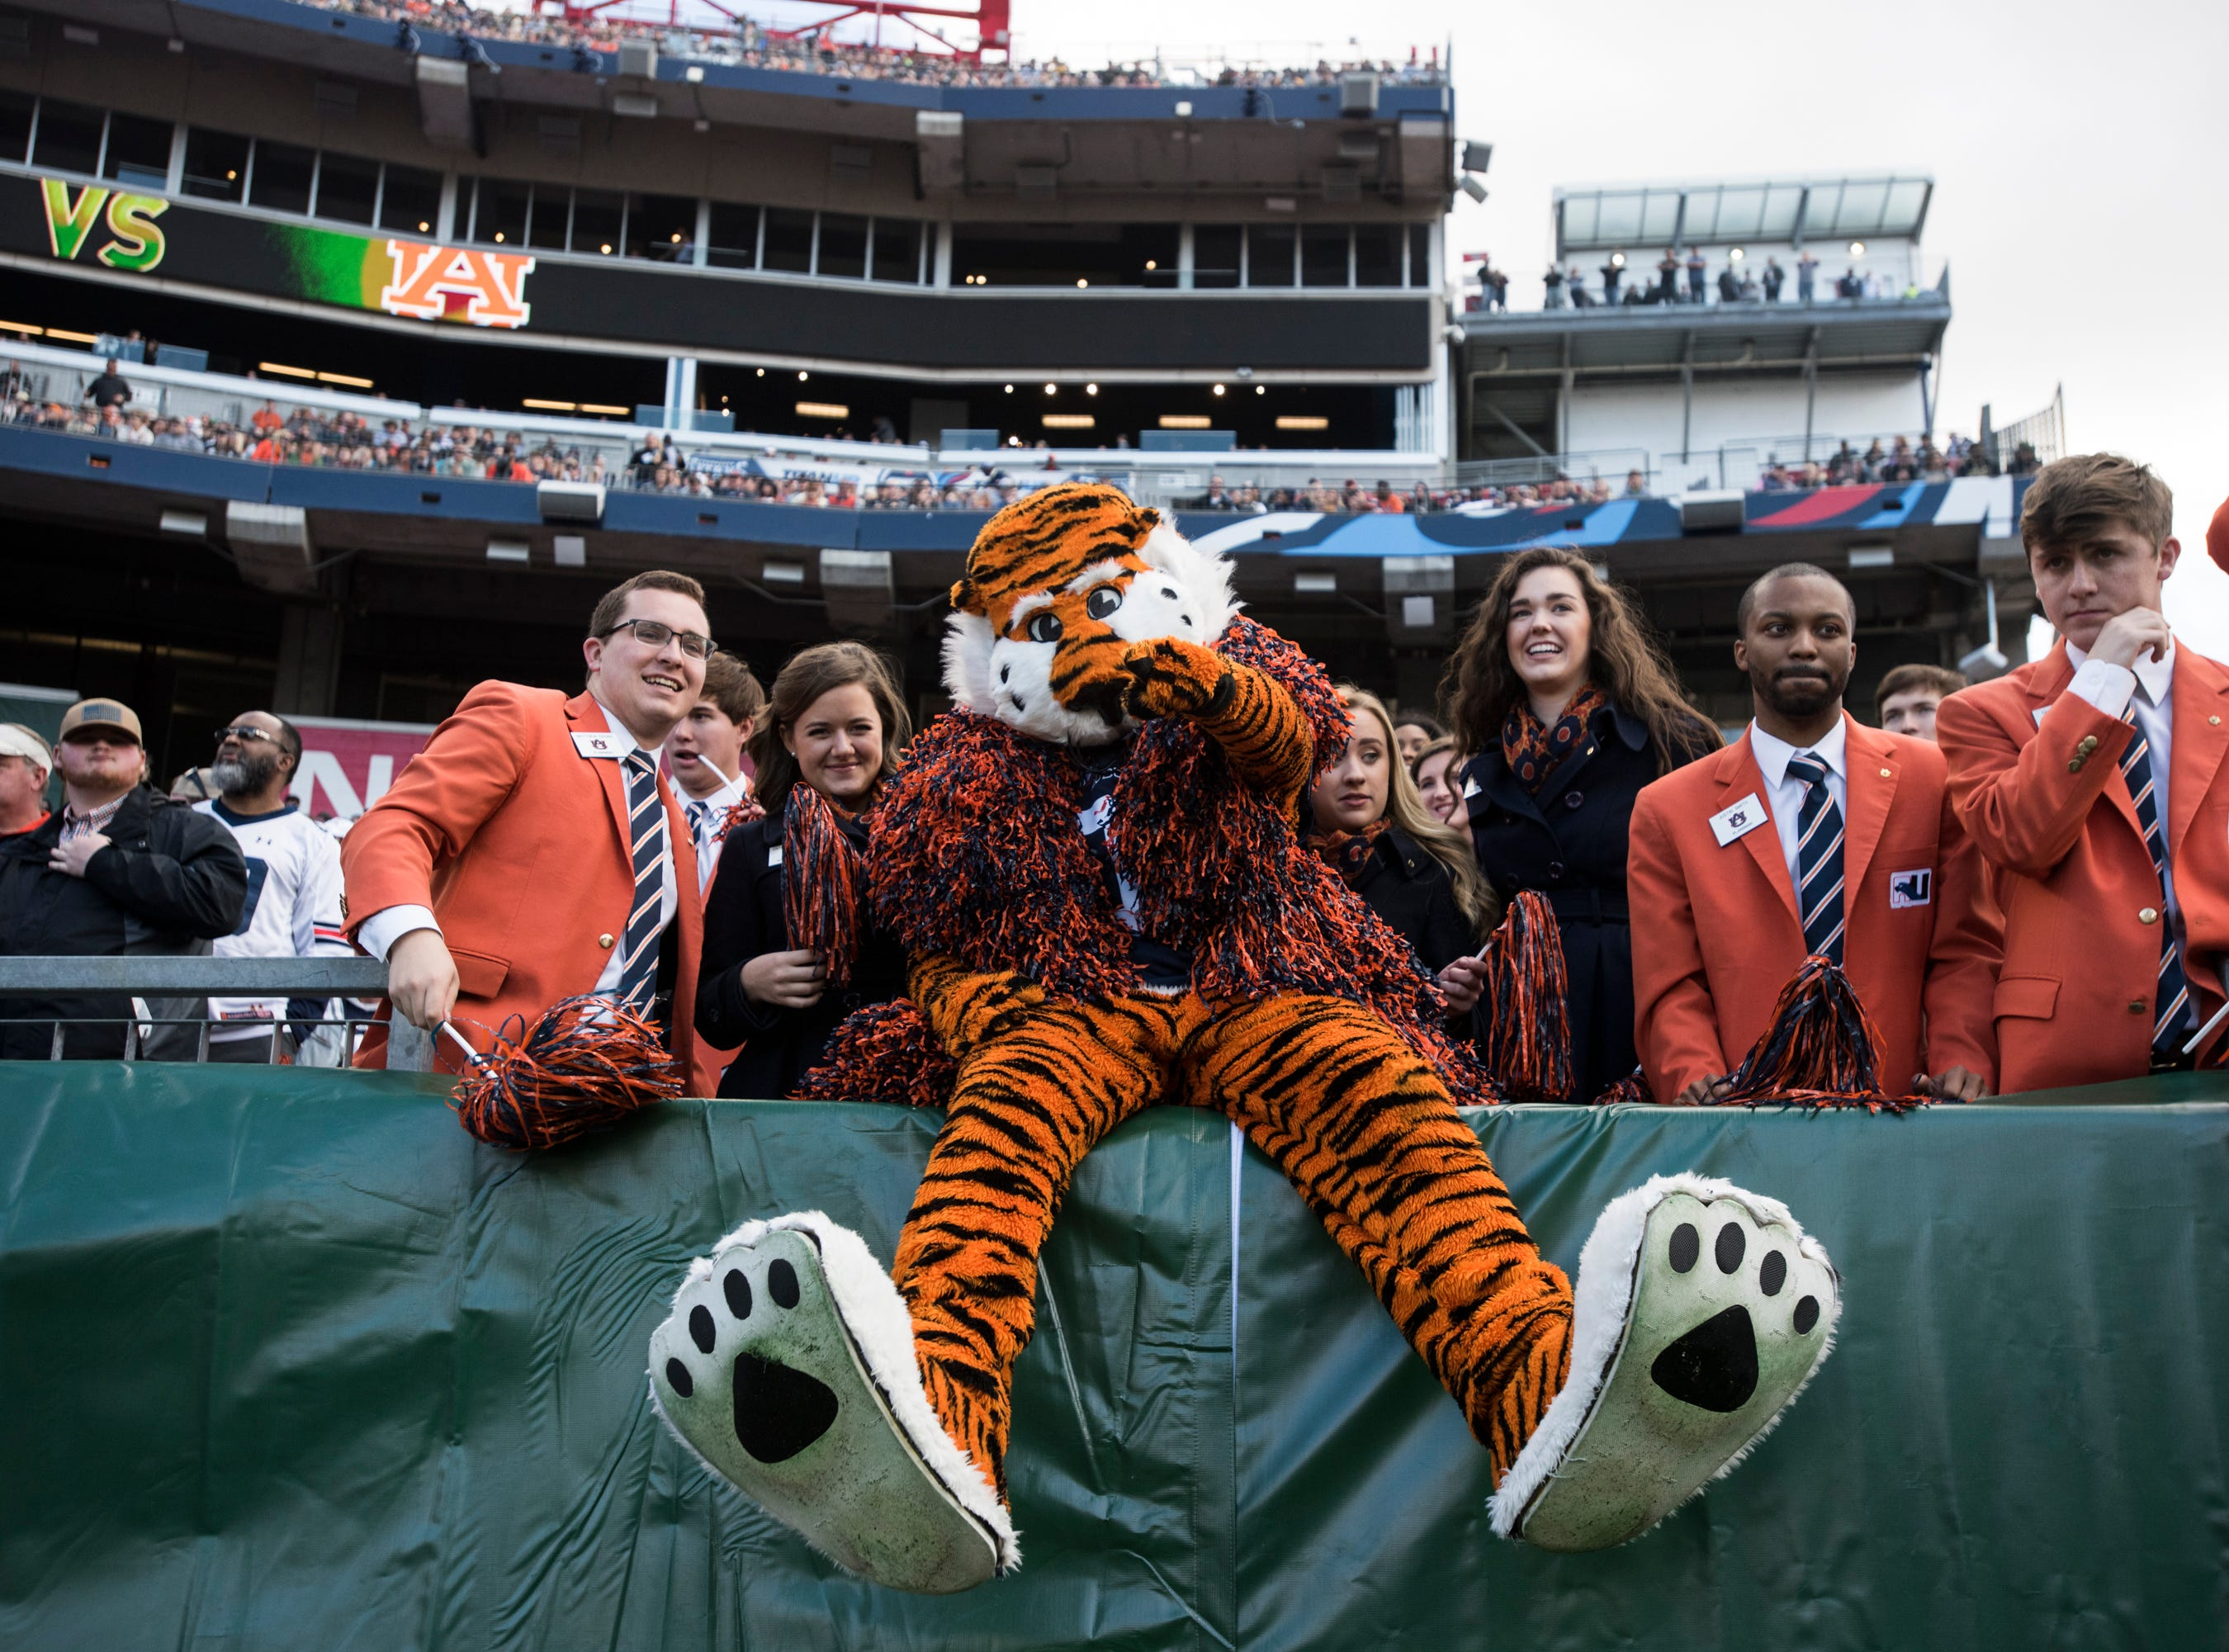 Auburn mascot Aubie jumps into the crowd during the Music City Bowl at Nissan Stadium in Nashville, Tenn., on Friday, Dec. 28, 2018. Auburn leads Purdue 56-7 at halftime.